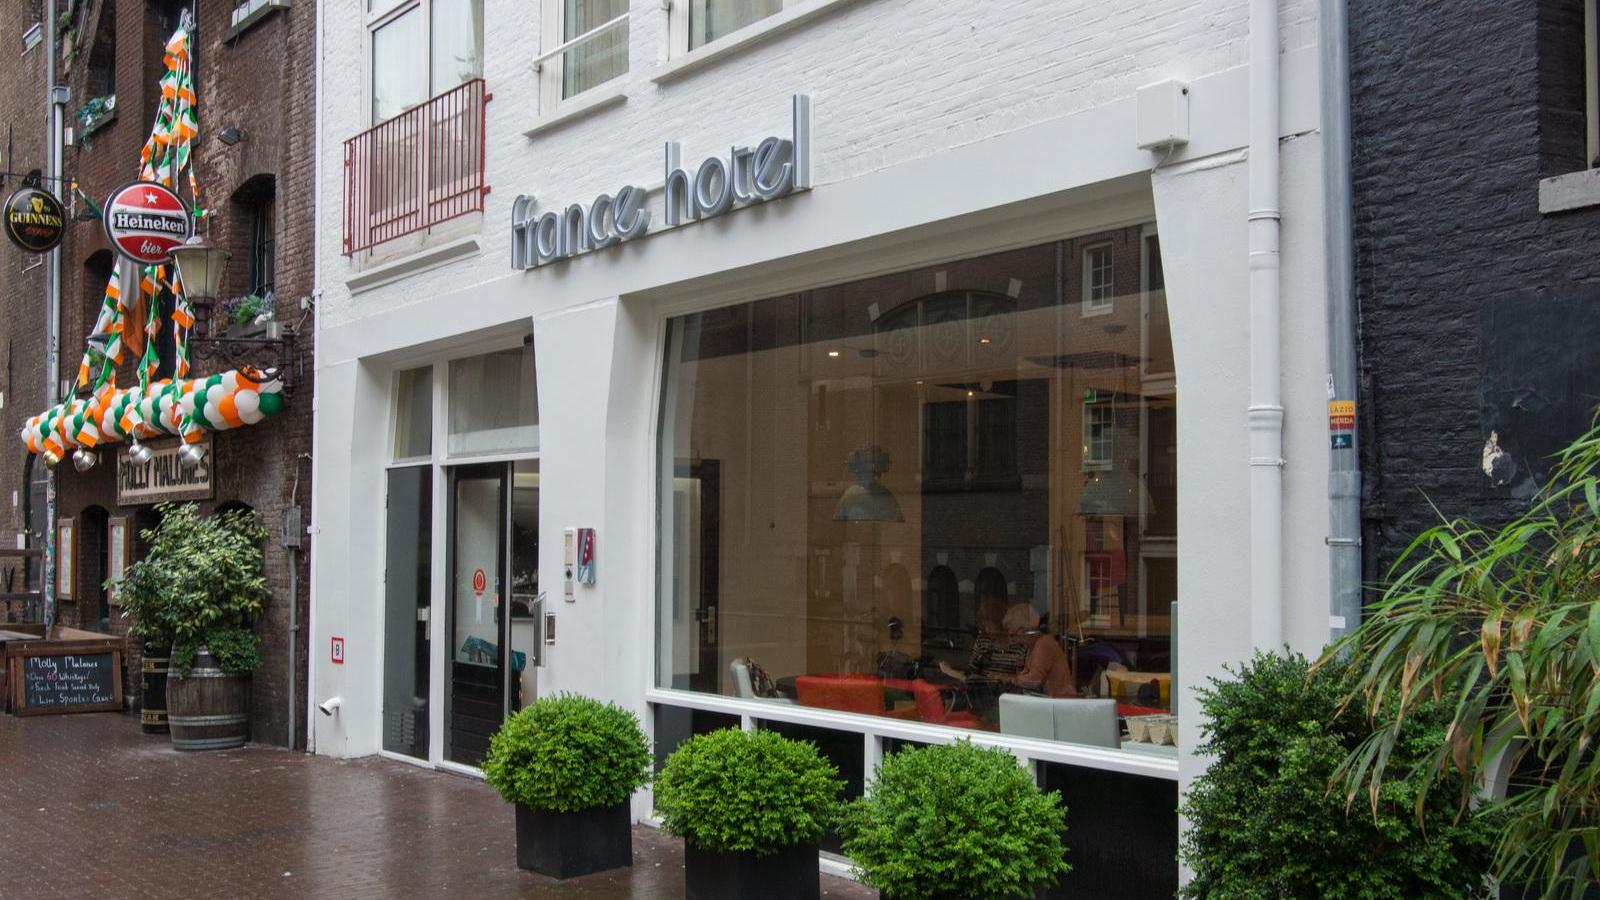 Entrence France Hotel Amsterdam